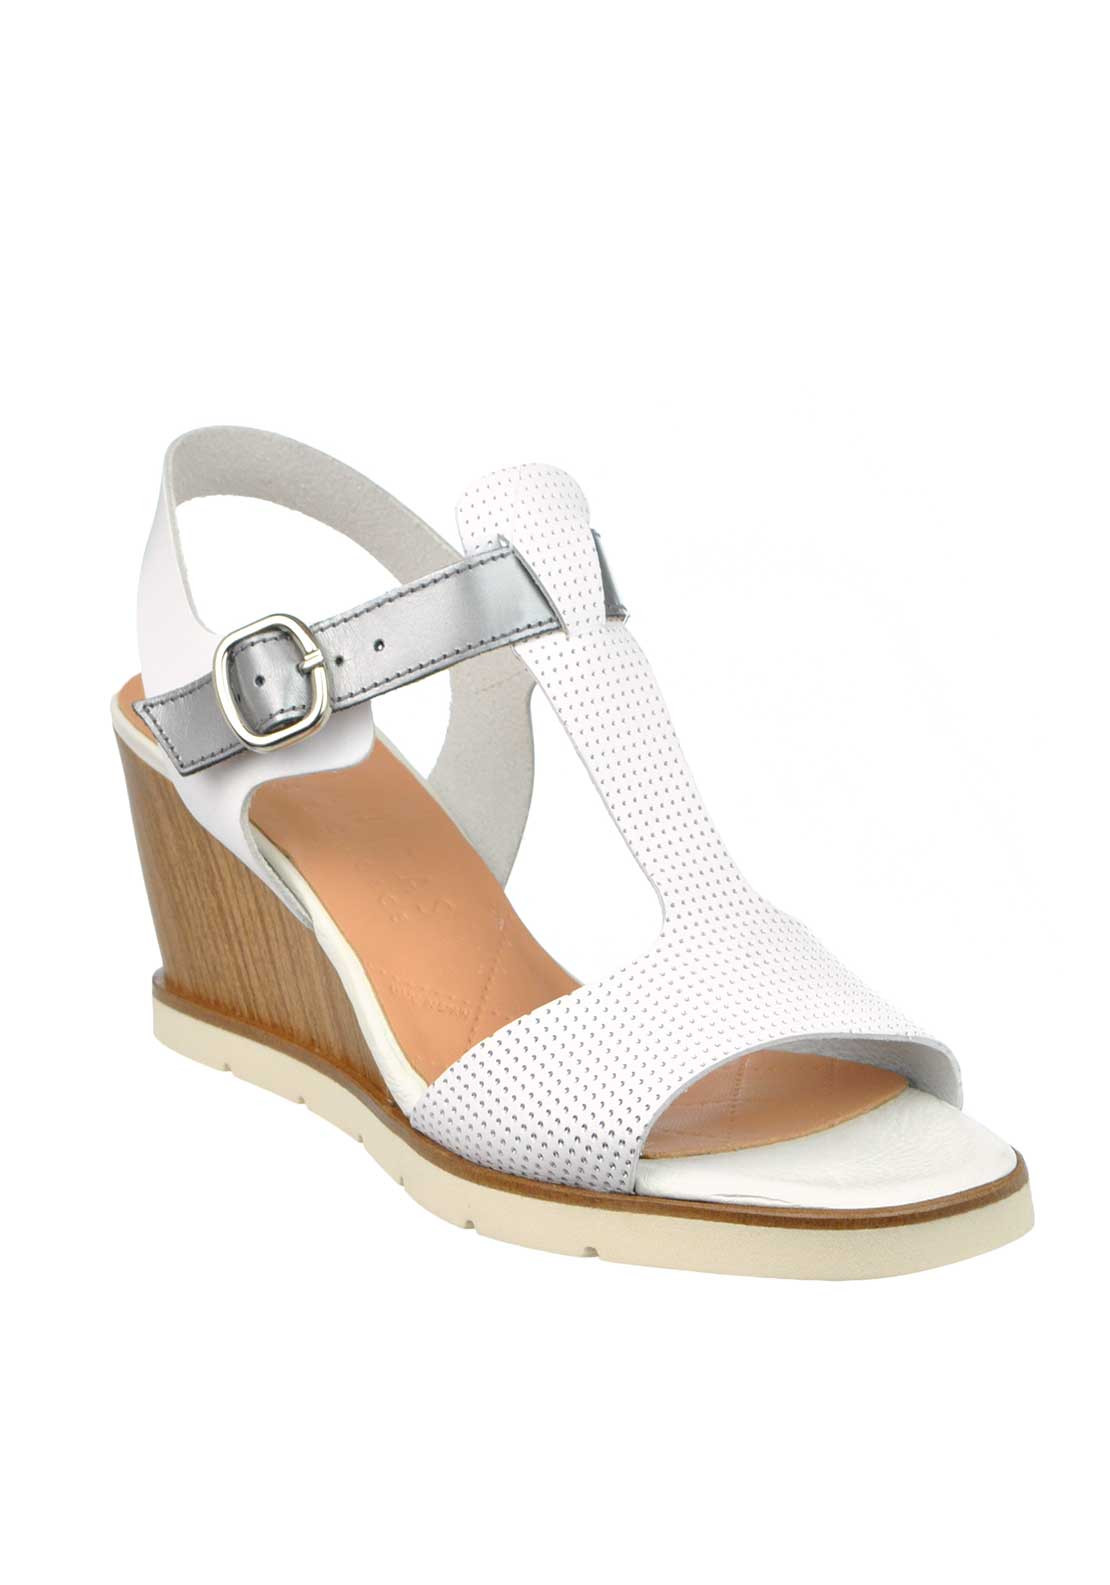 Hispanitas Leather Perforated T-Bar Wedged Sandals, White